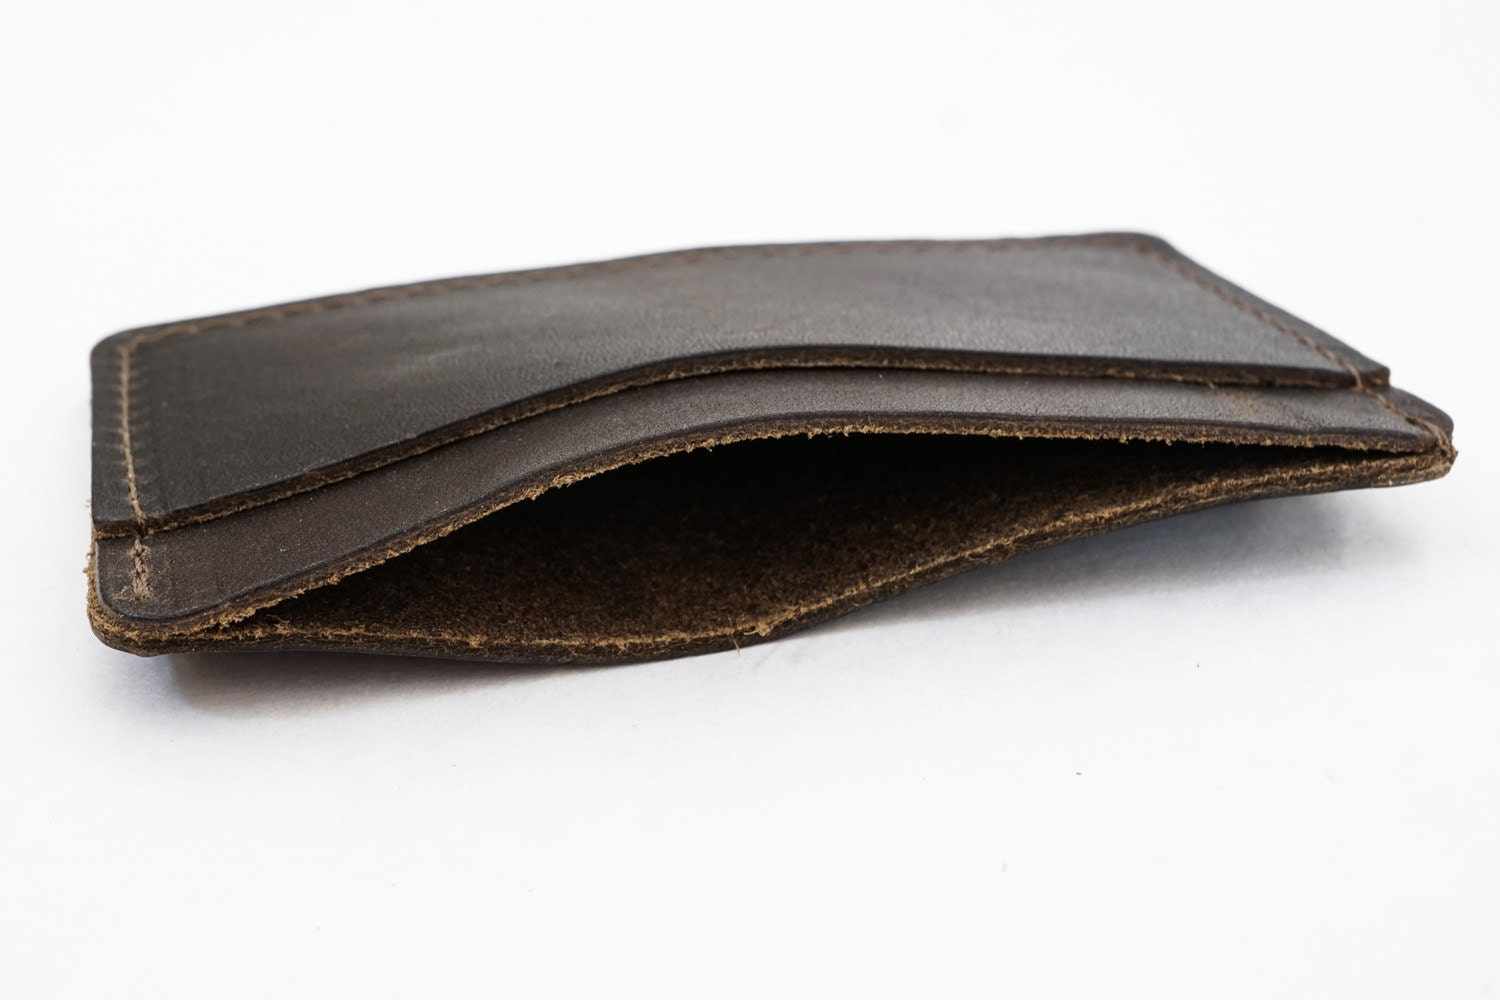 BUY 4 GET 1 FREE Sale. The Two-Z Card Carrier, Minimalist Wallet ...